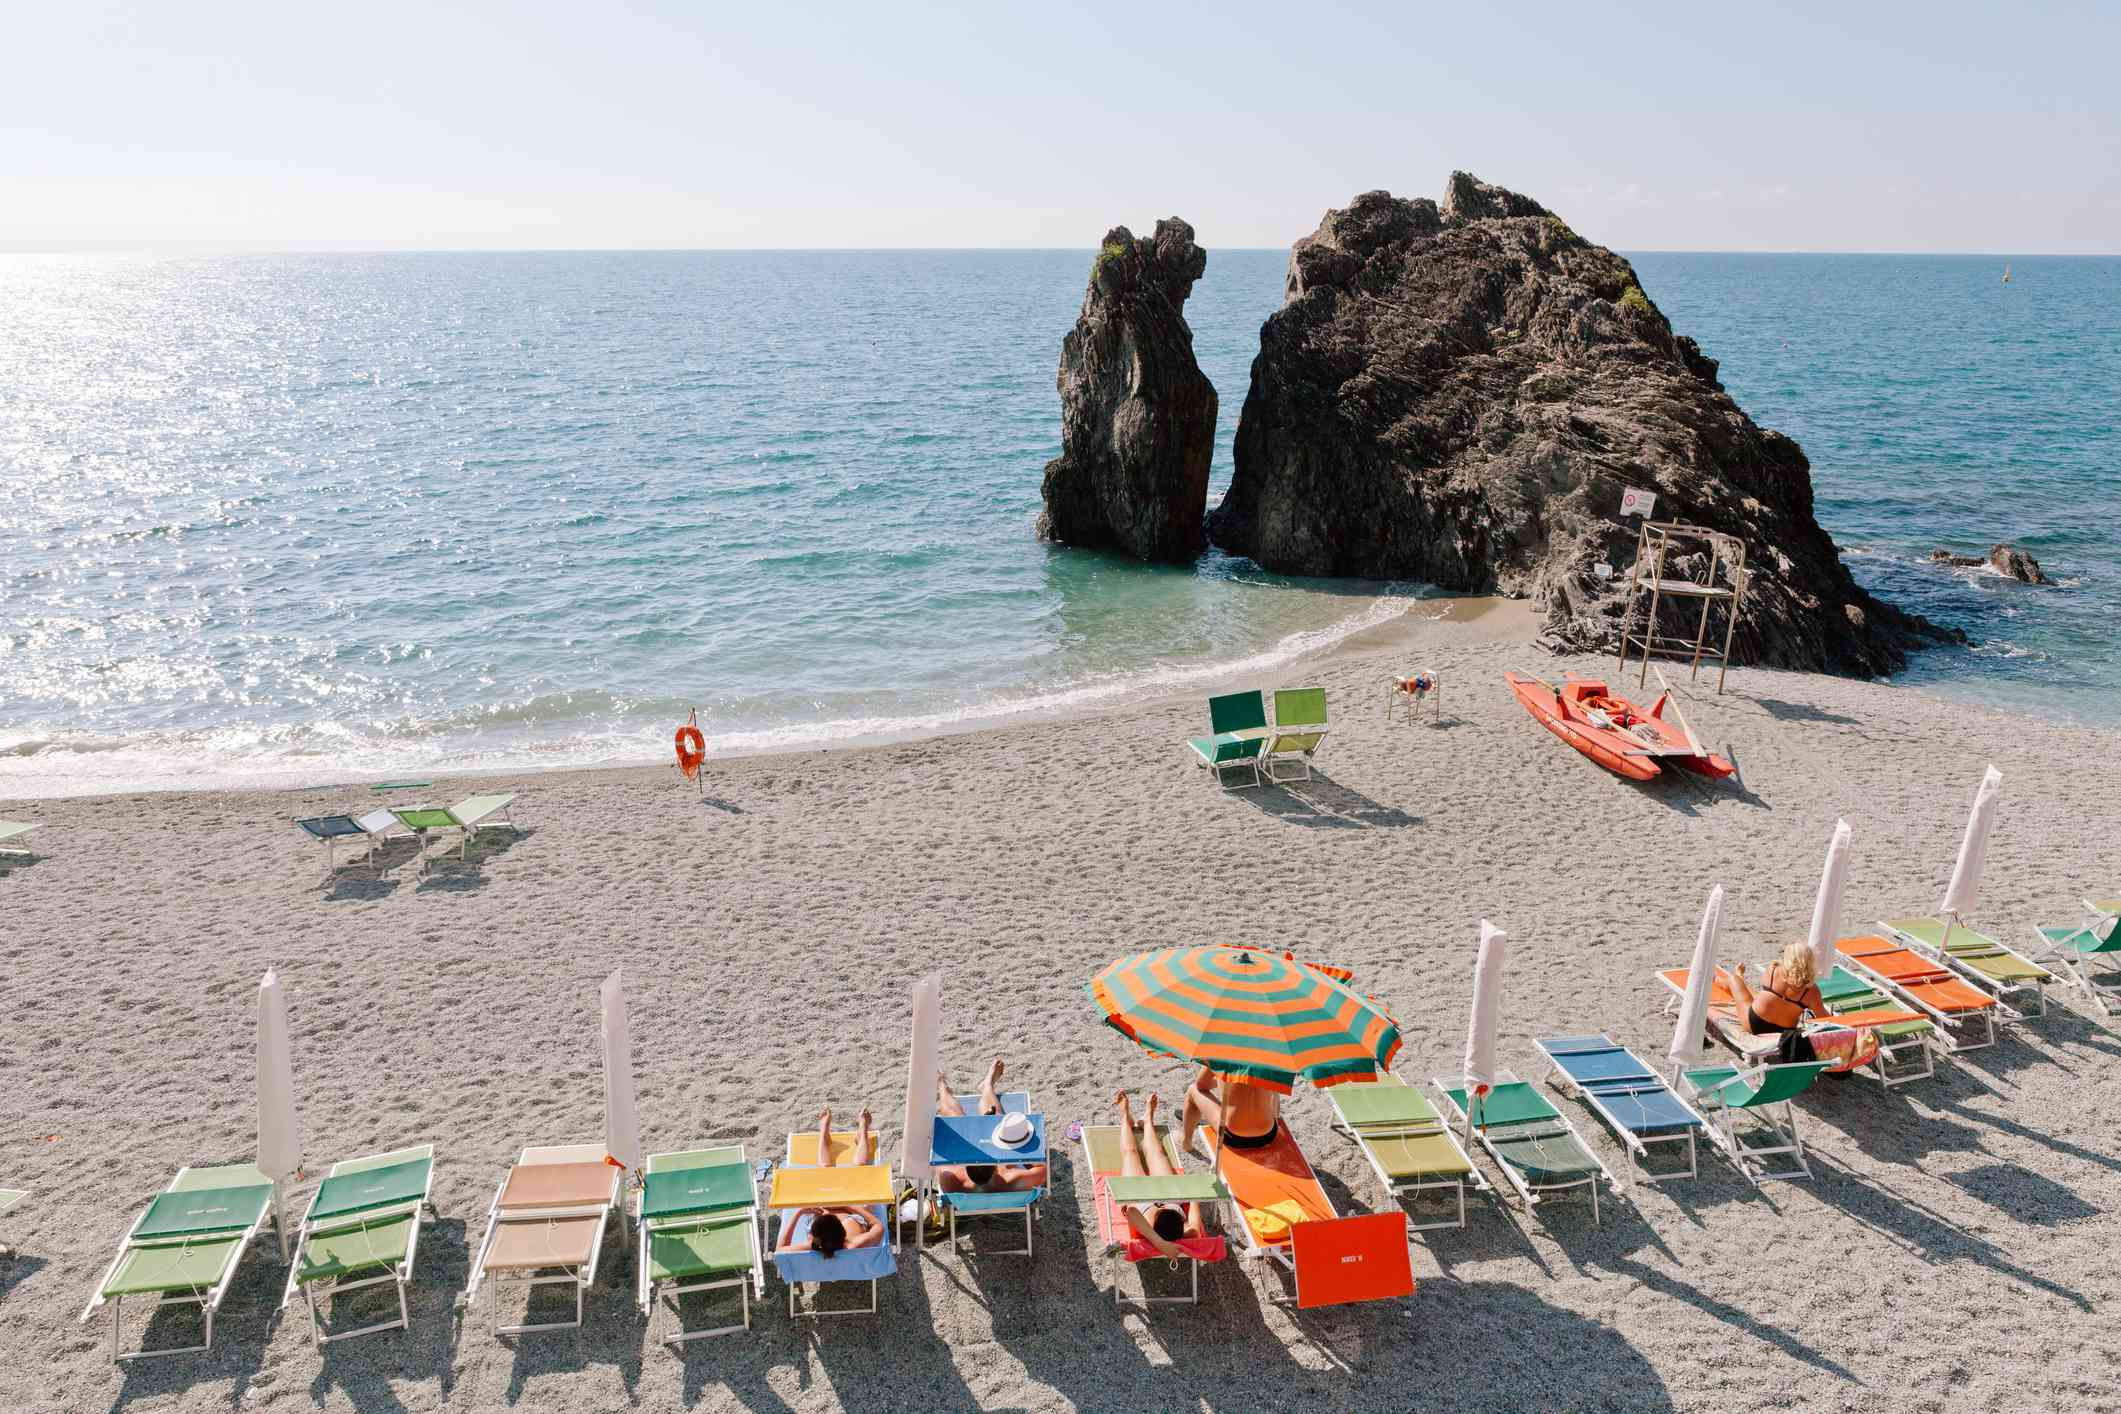 Umbrellas and lounge chairs, plus a rock formation on Monterosso al Mare beach